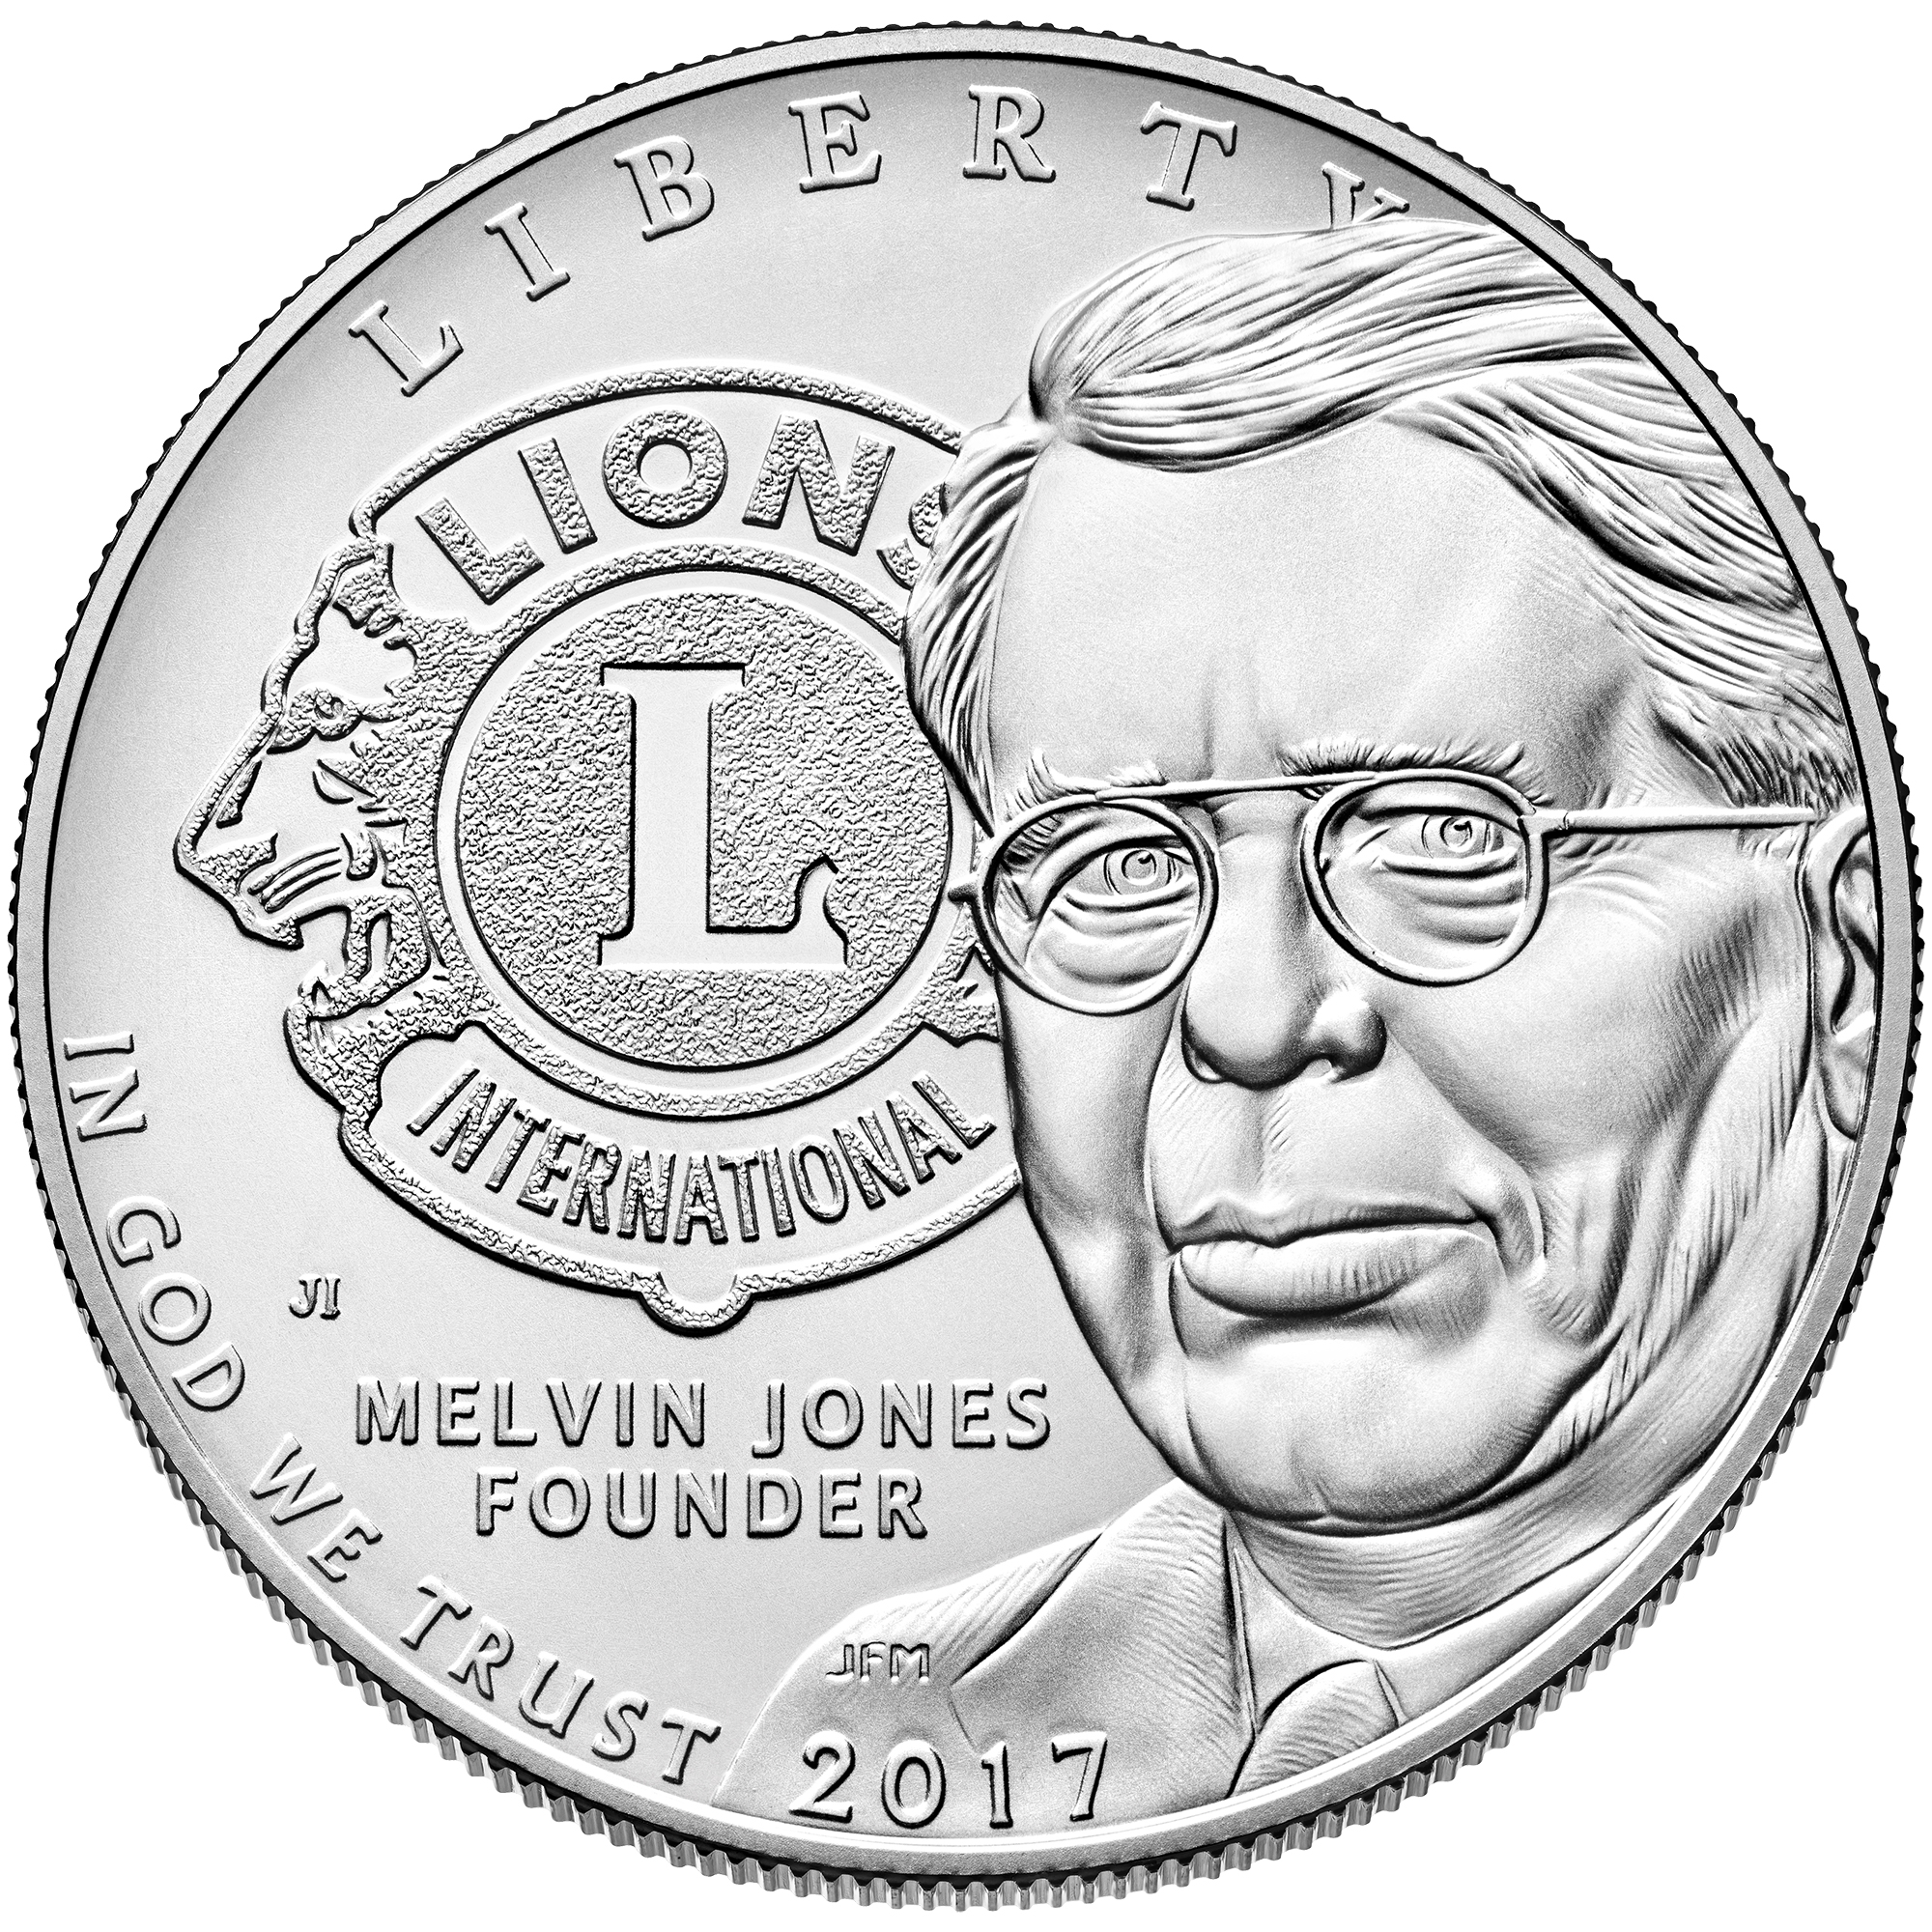 Obverse Uncirculted Lions Club 2017 Commemorative Silver Dollar Coin